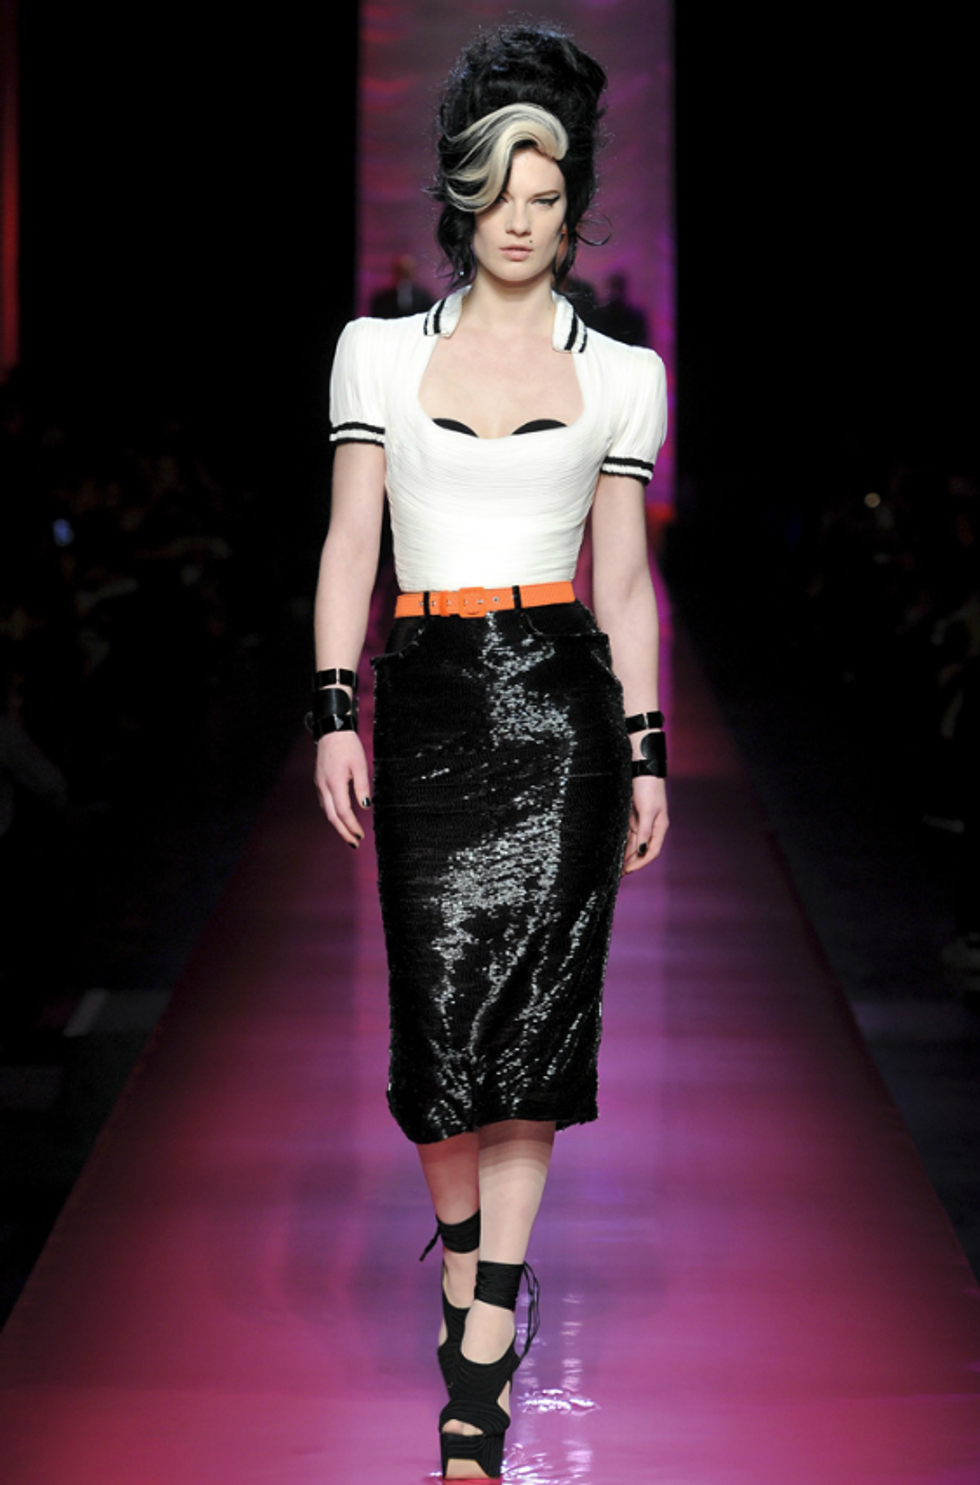 Jean Paul Gaultier's Spring '12 Couture Channels Amy Winehouse